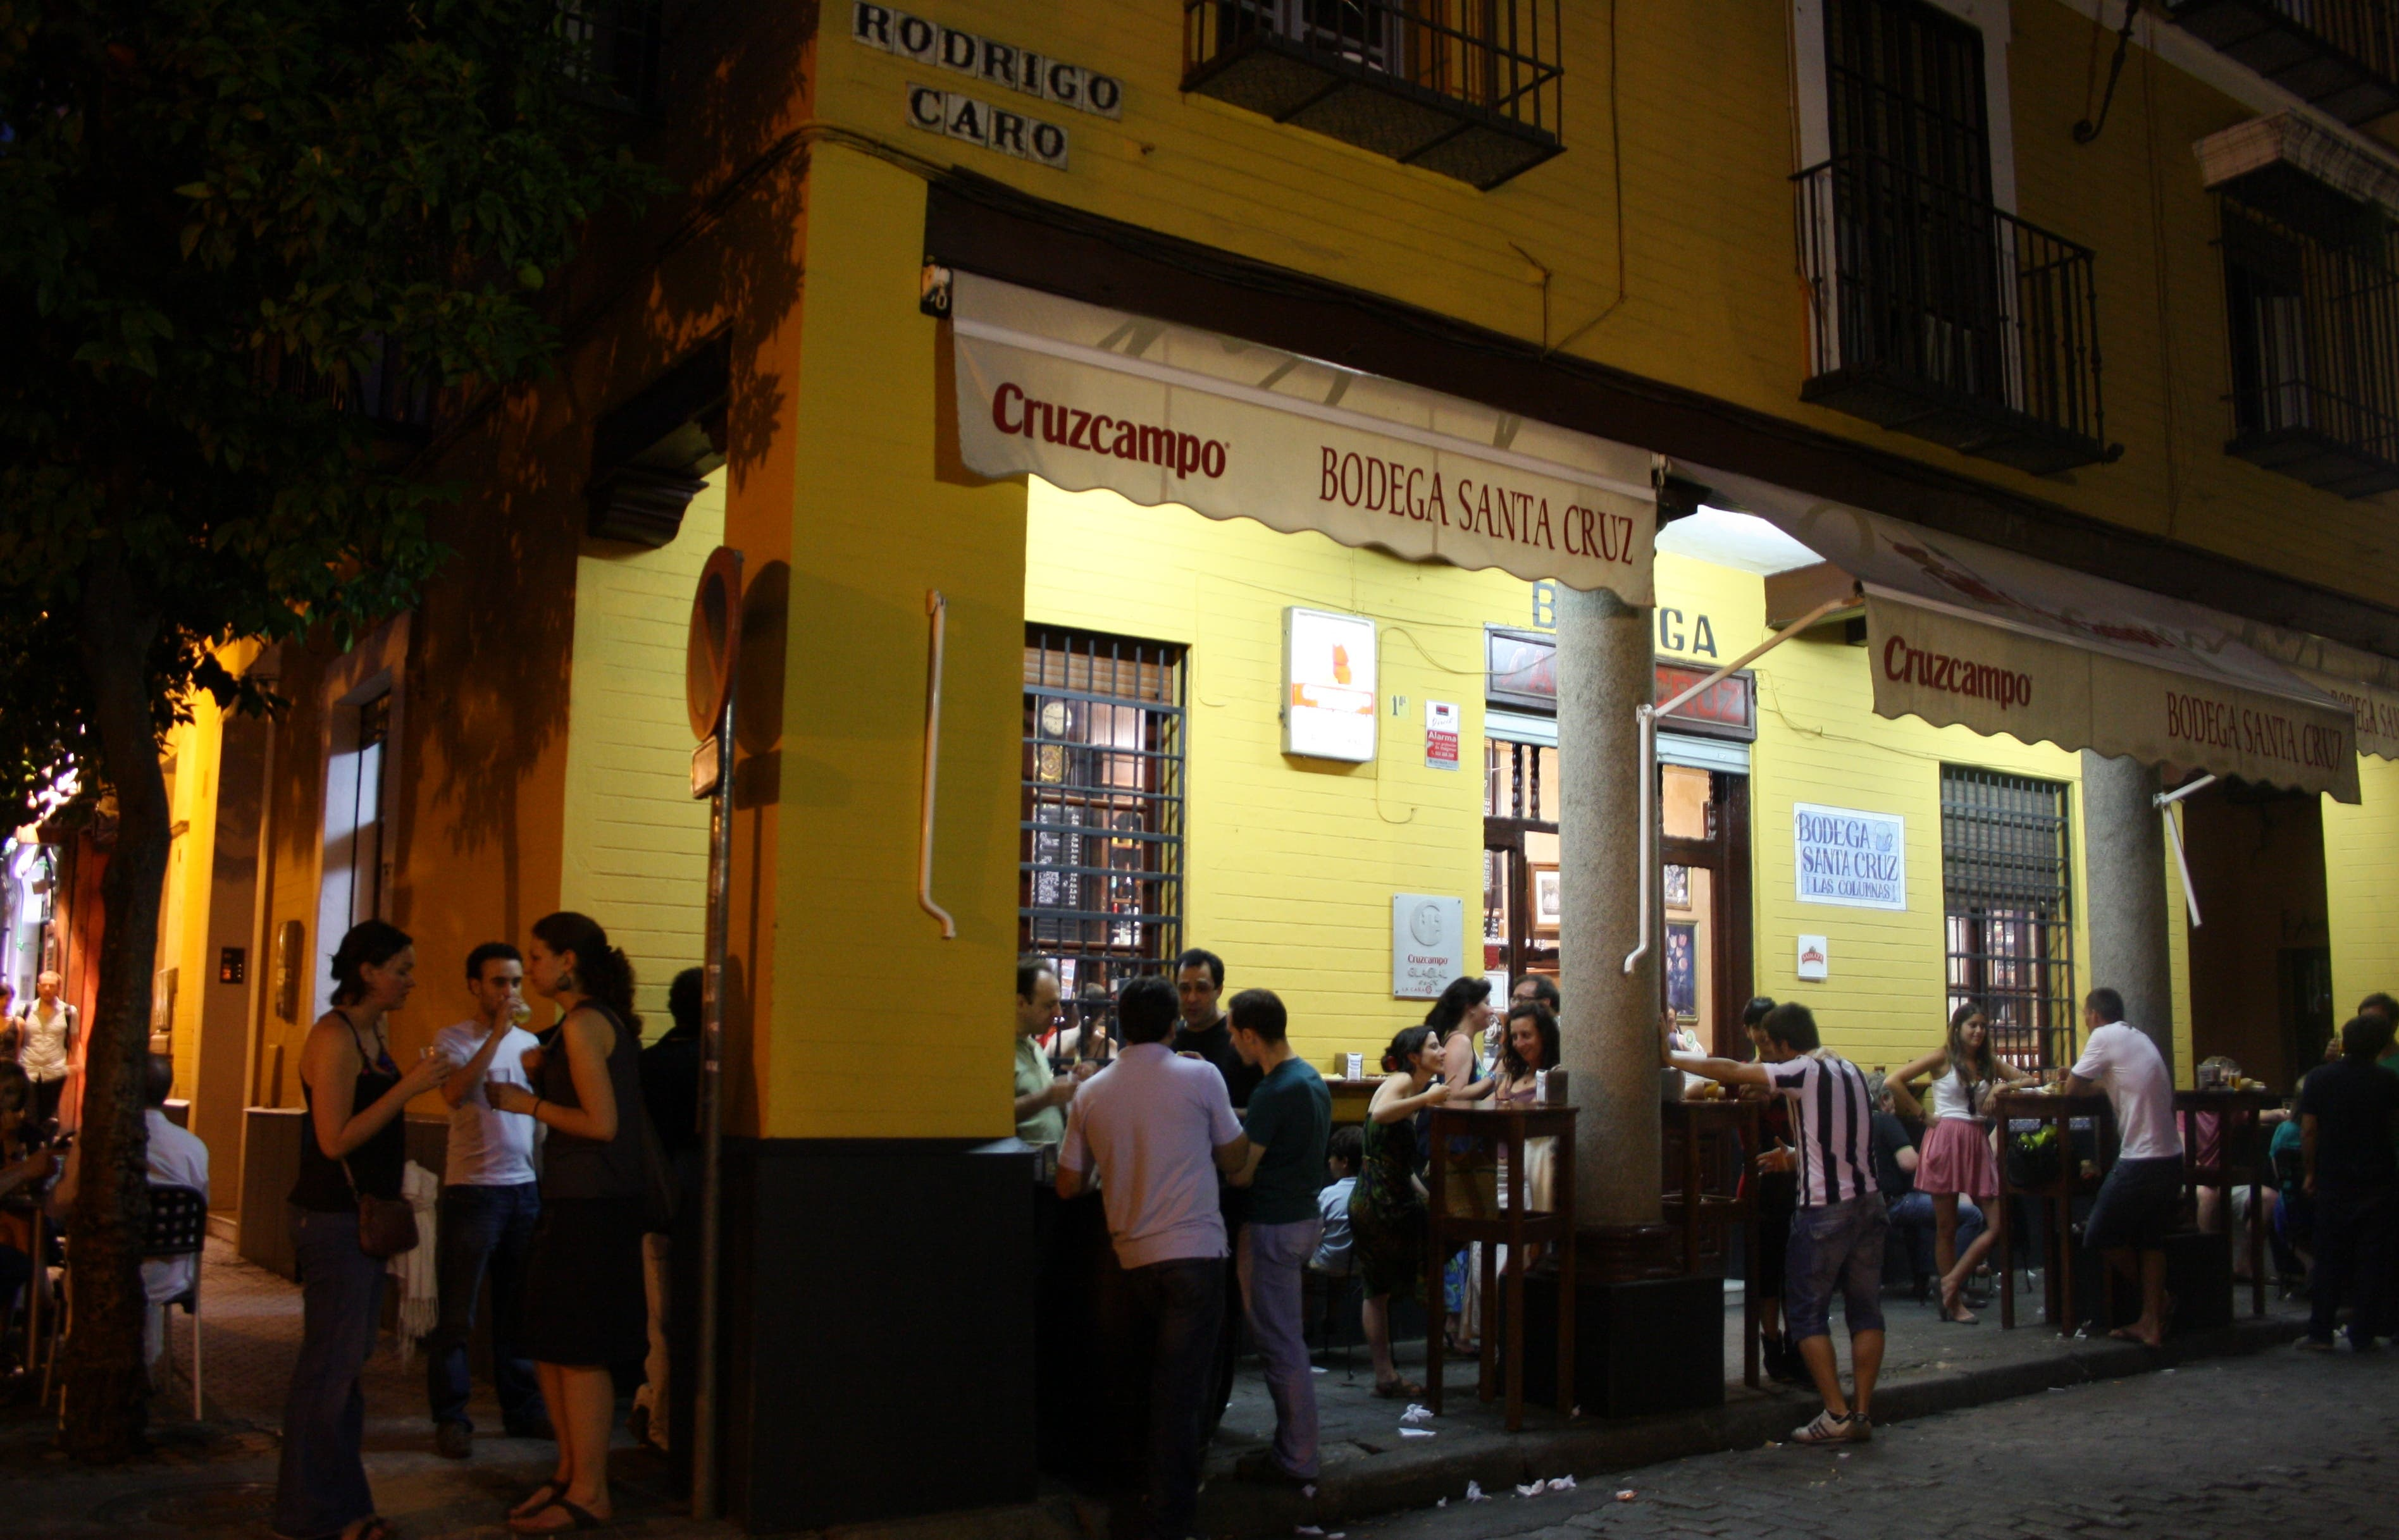 New noise regulations in Sevilla could mean trouble for bar owners